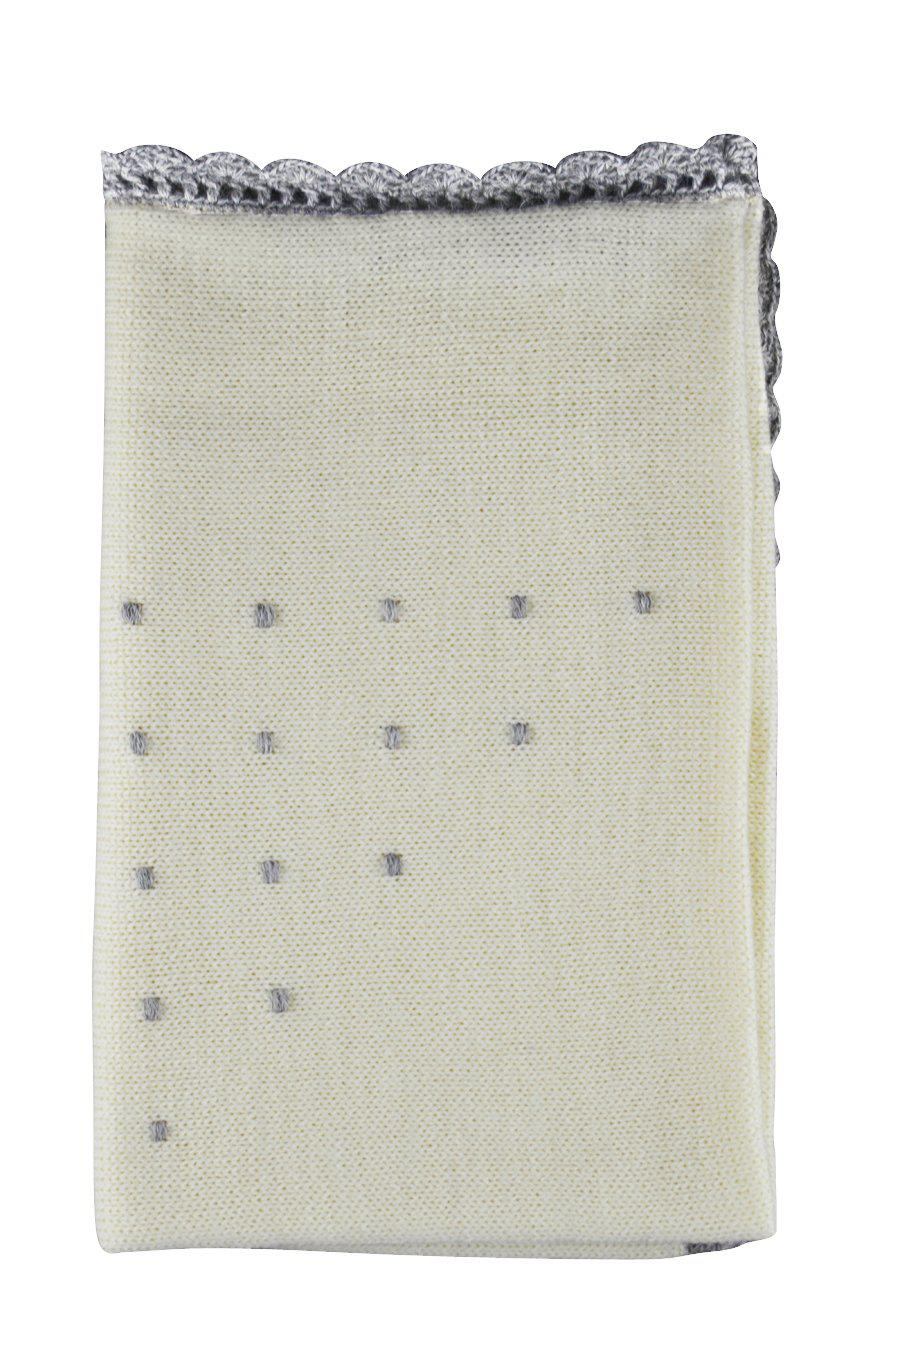 Ivory Alpaca Blanket with Grey Dots - Little Threads Inc. Children's Clothing